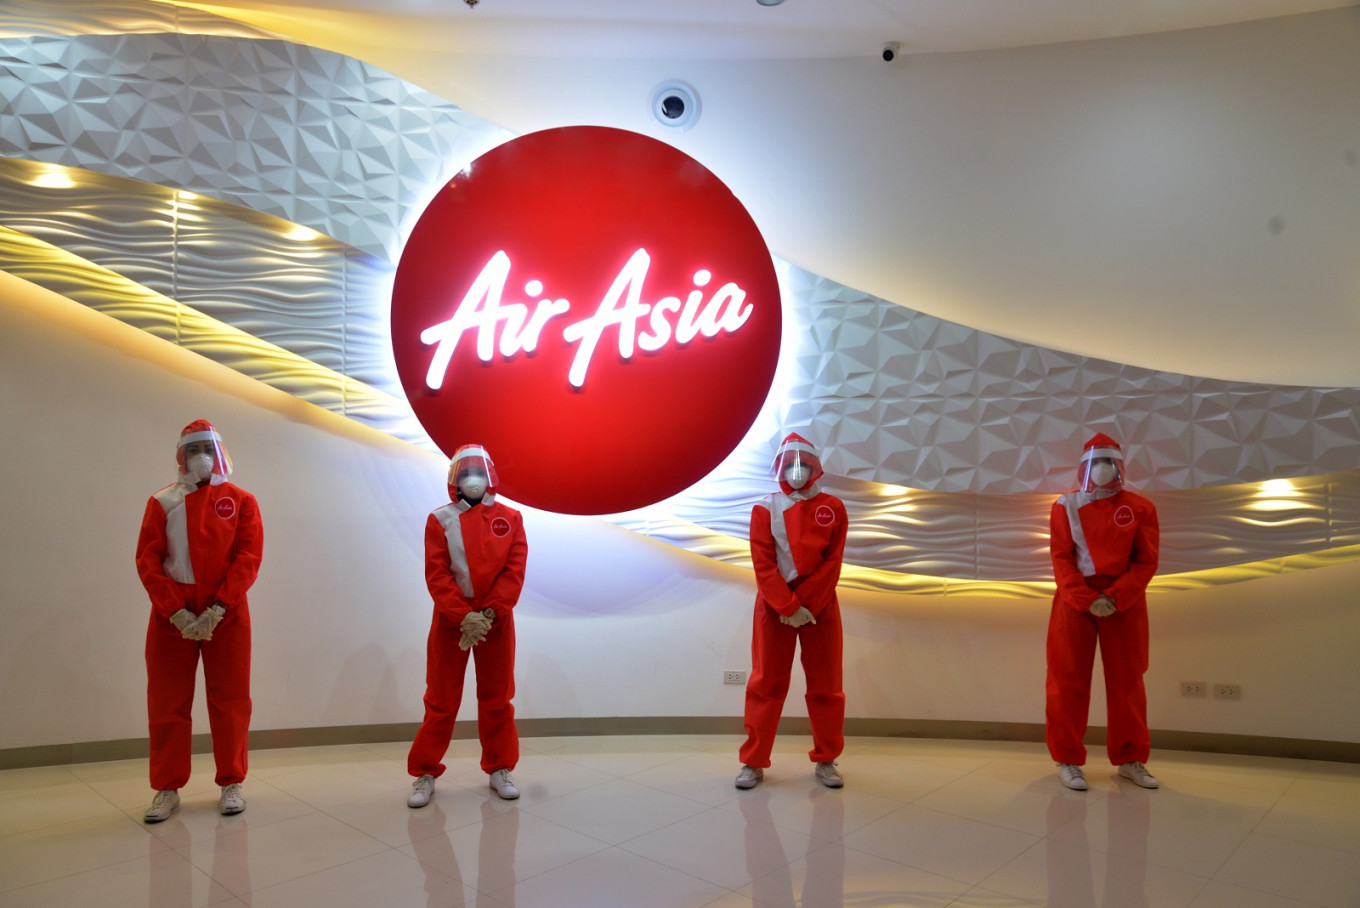 AirAsia pivots to digital business with superapp, aims to capture ASEAN market